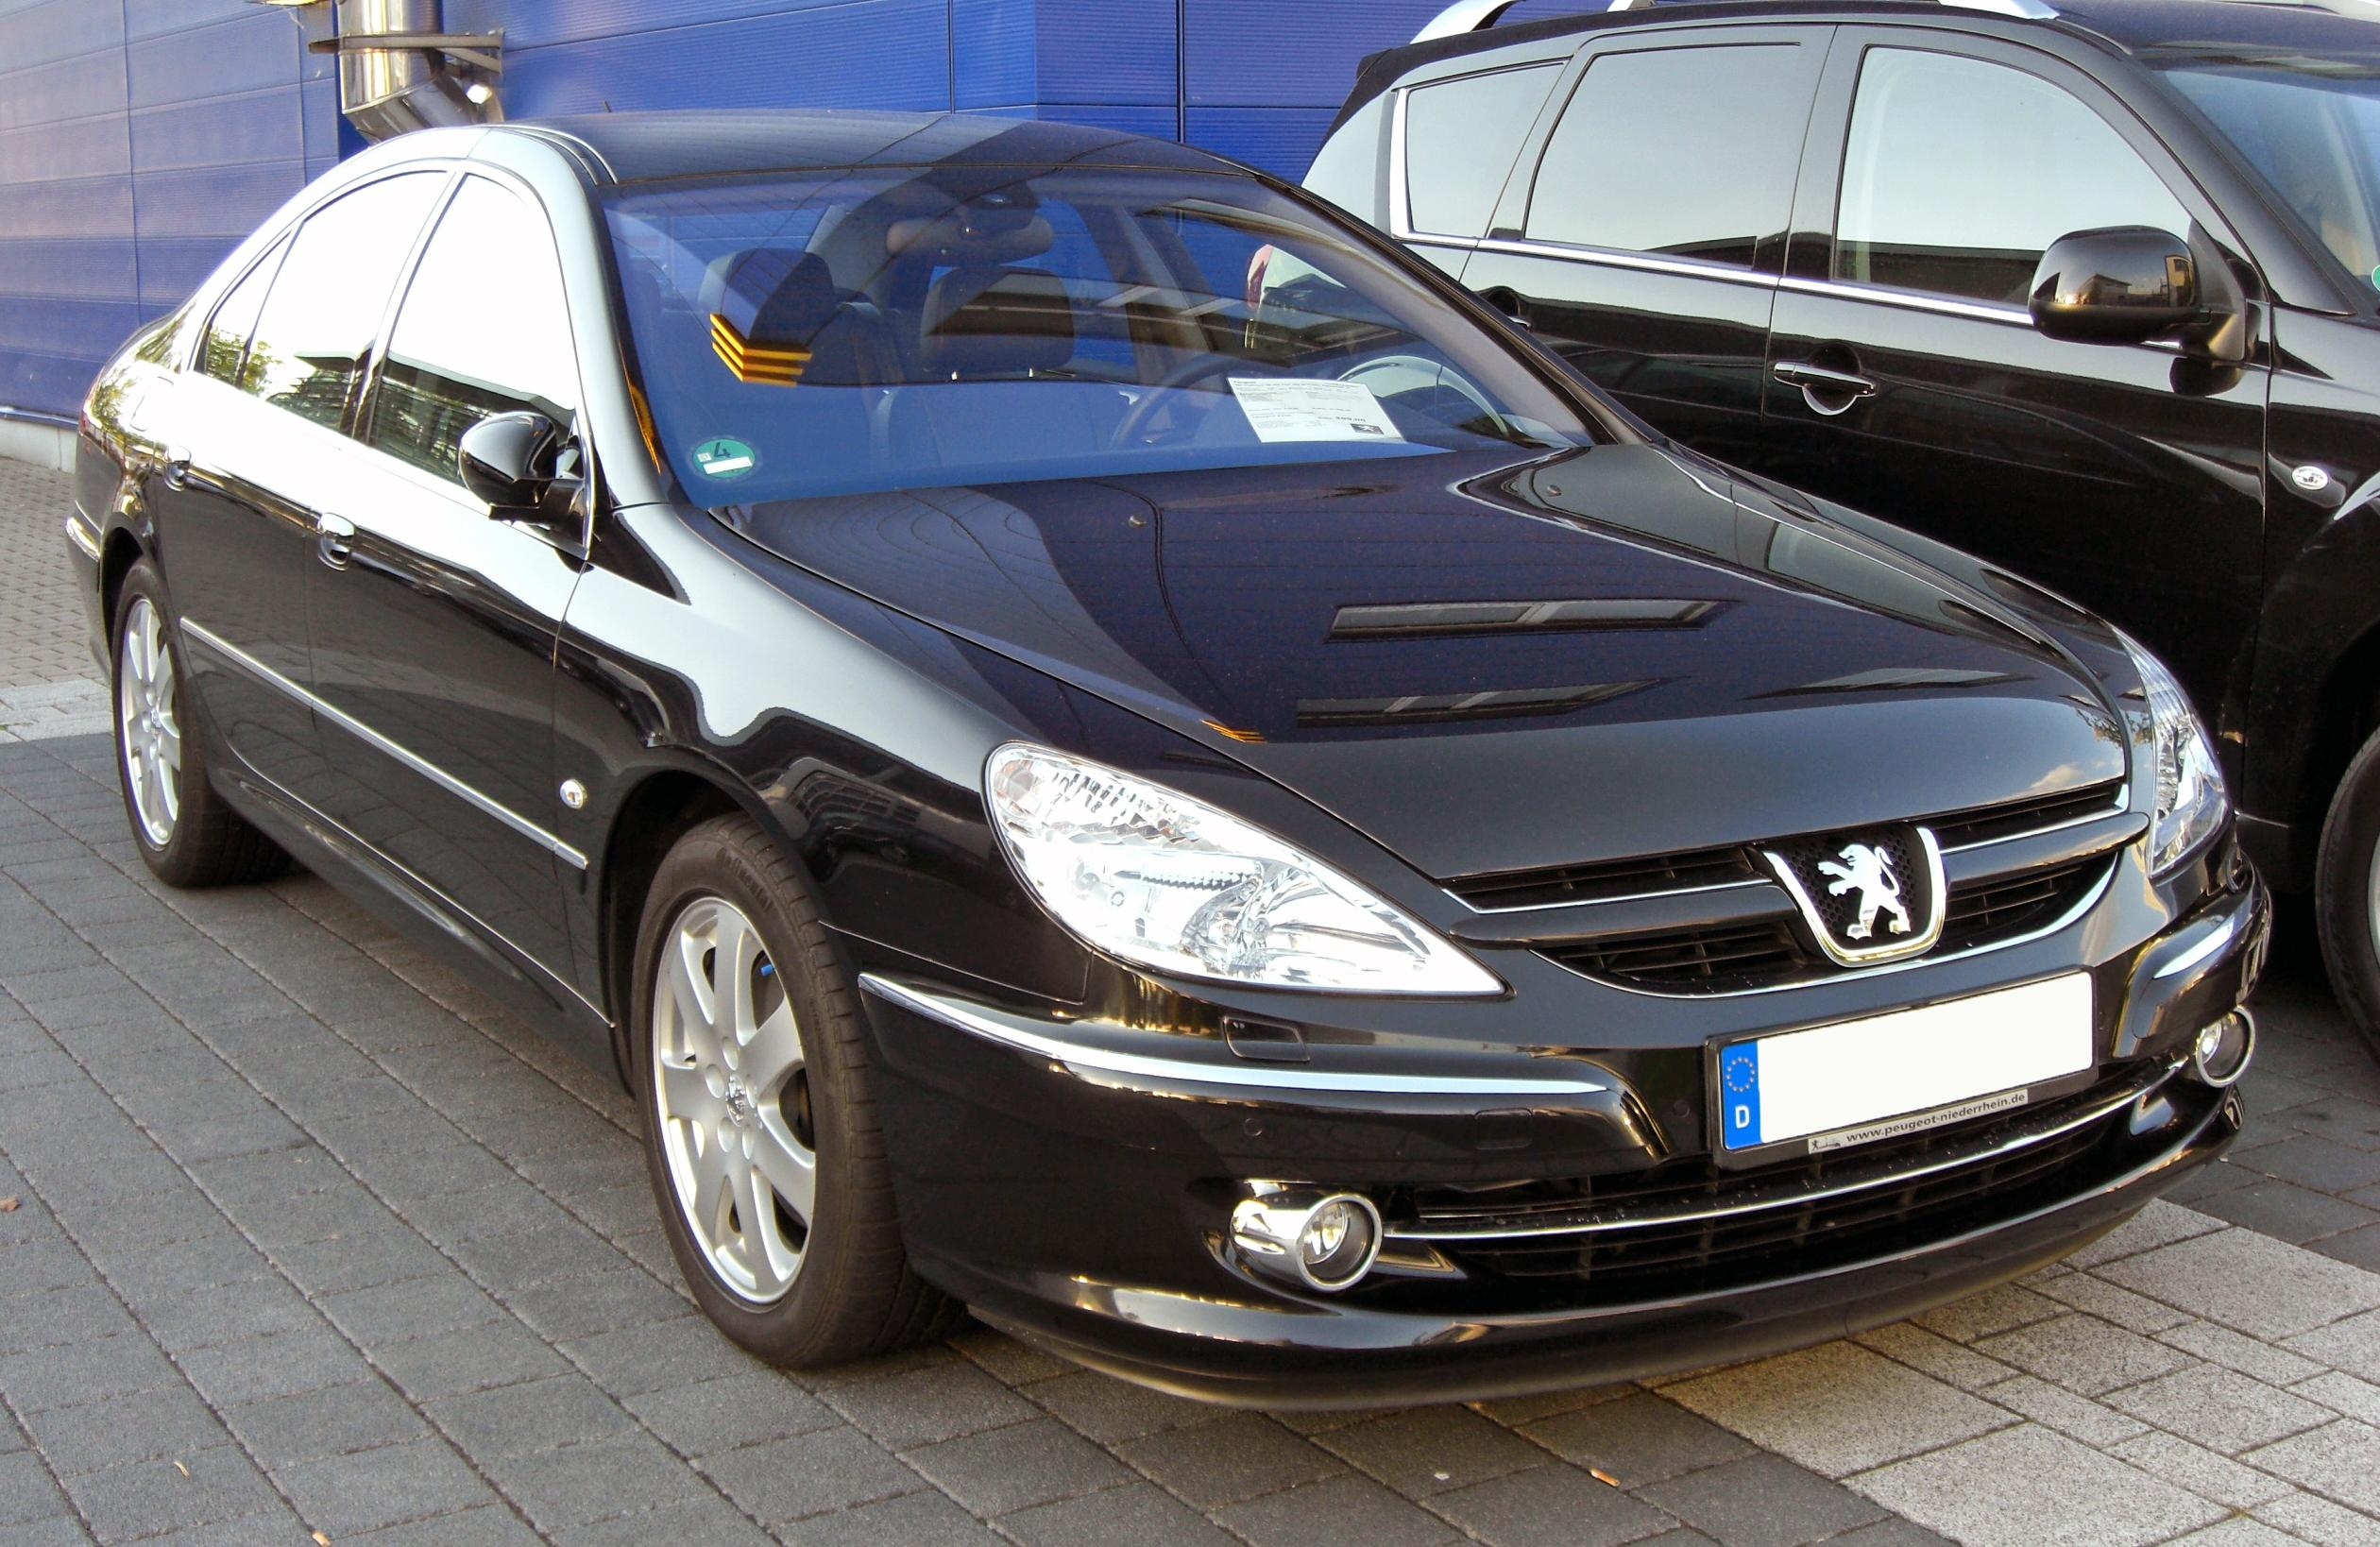 peugeot 607 2013 pictures #13